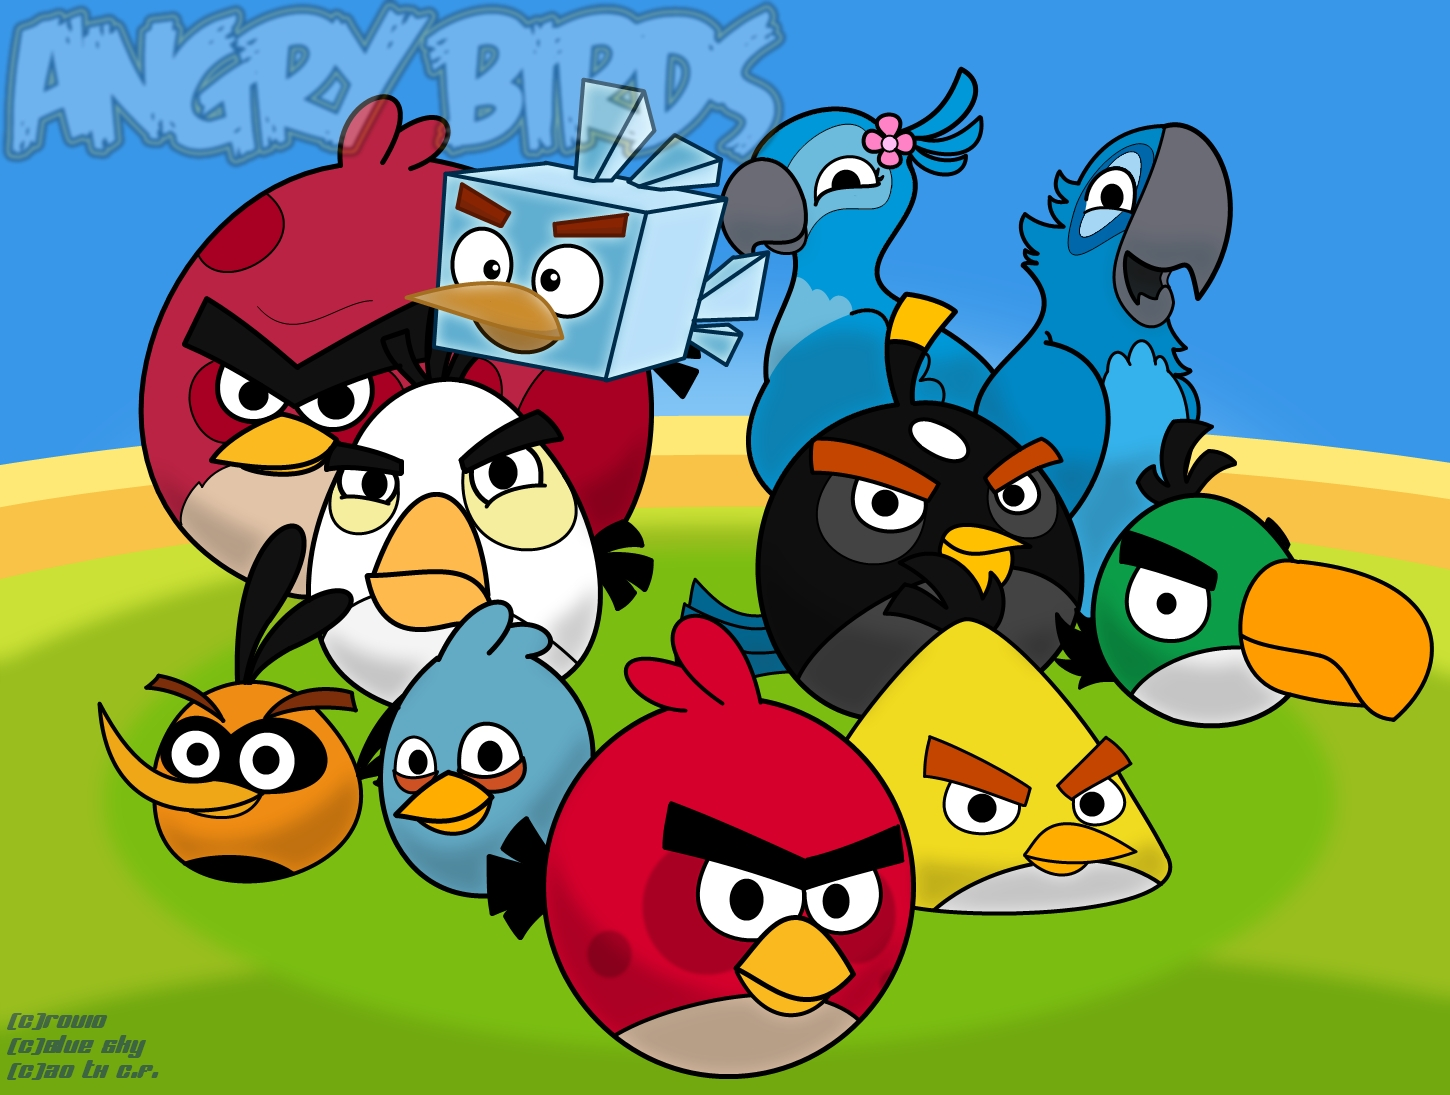 angry birds wallpaper, best angry birds wallpapers in high quality